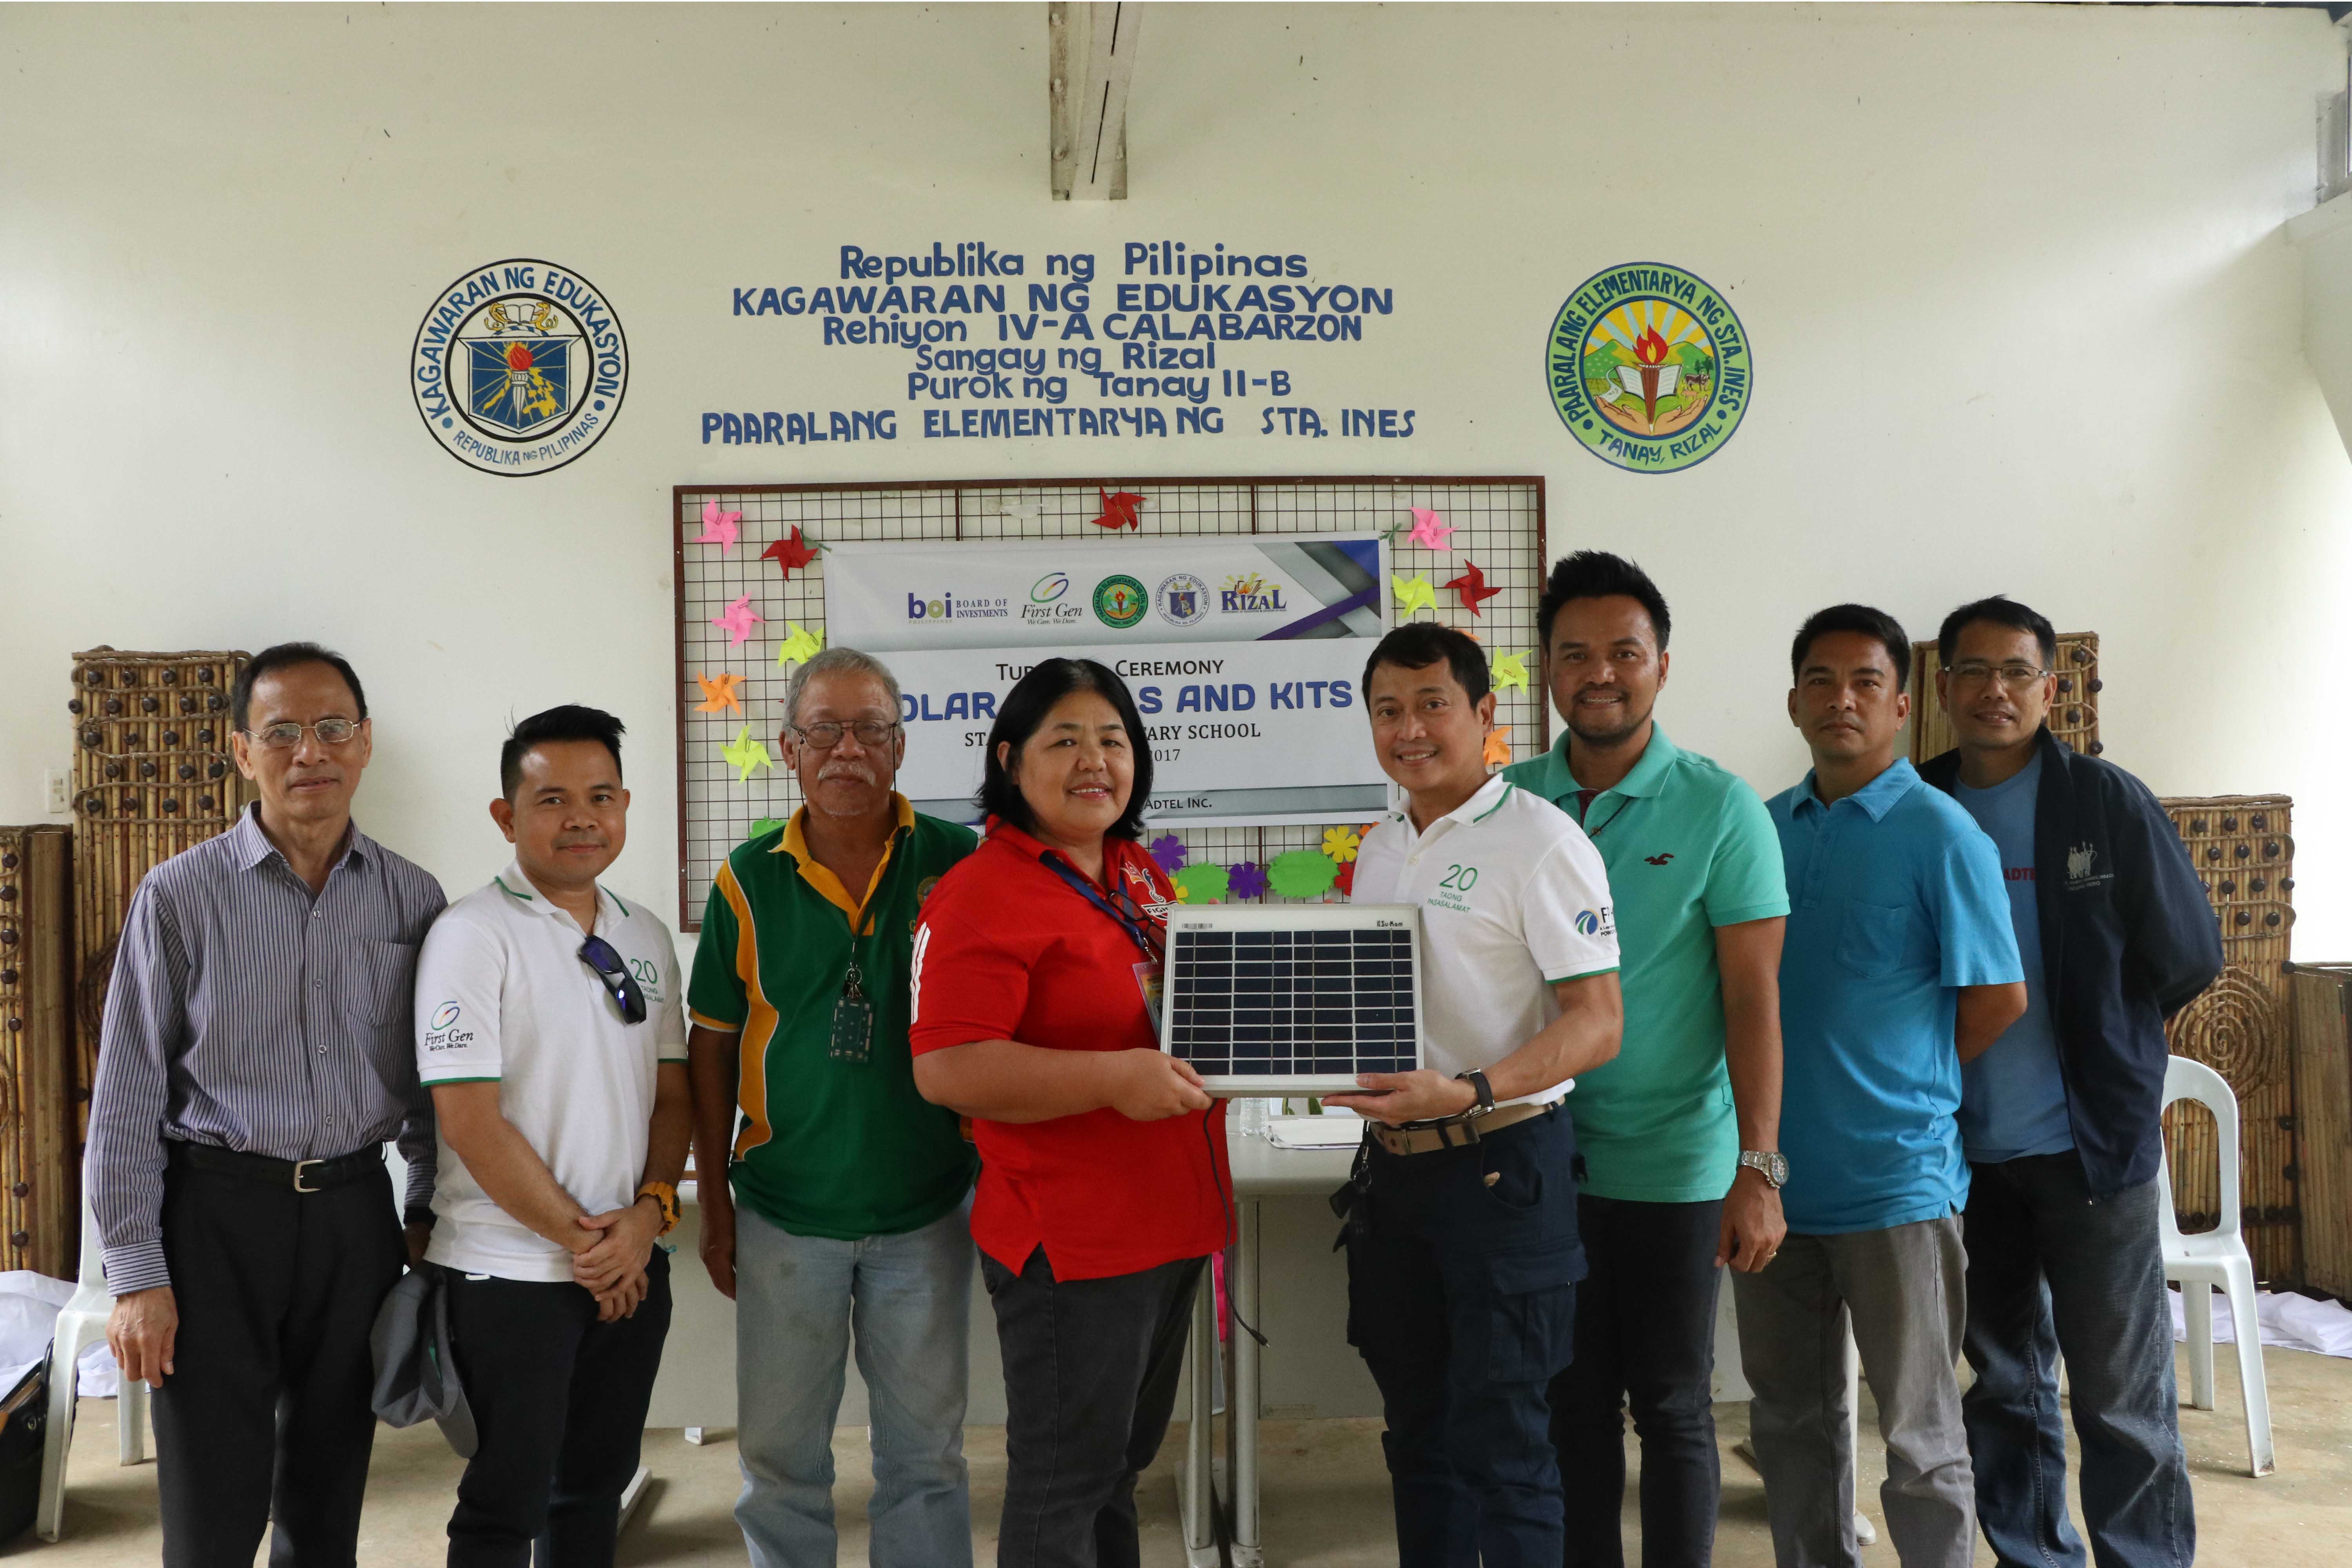 Jerome Cainglet (5th from left), First Gen vice president, presents a sample of a solar panel to Adoracion Valdez  (4th from left), head teacher of Santa Ines Elementary, during  the turnover of a solar power system First Gen donated to the school. Also in photo are (l-r) Nestor Arcansalin, BOI director; Michael Reapor, First Gen assistant vice president; Gil Zubiaga, Brgy.Santa Ines chairman; Buddy Chester Repia of theDepartment of Education; and Ariel Abejuro with Reynaldo Reyes of Adtel